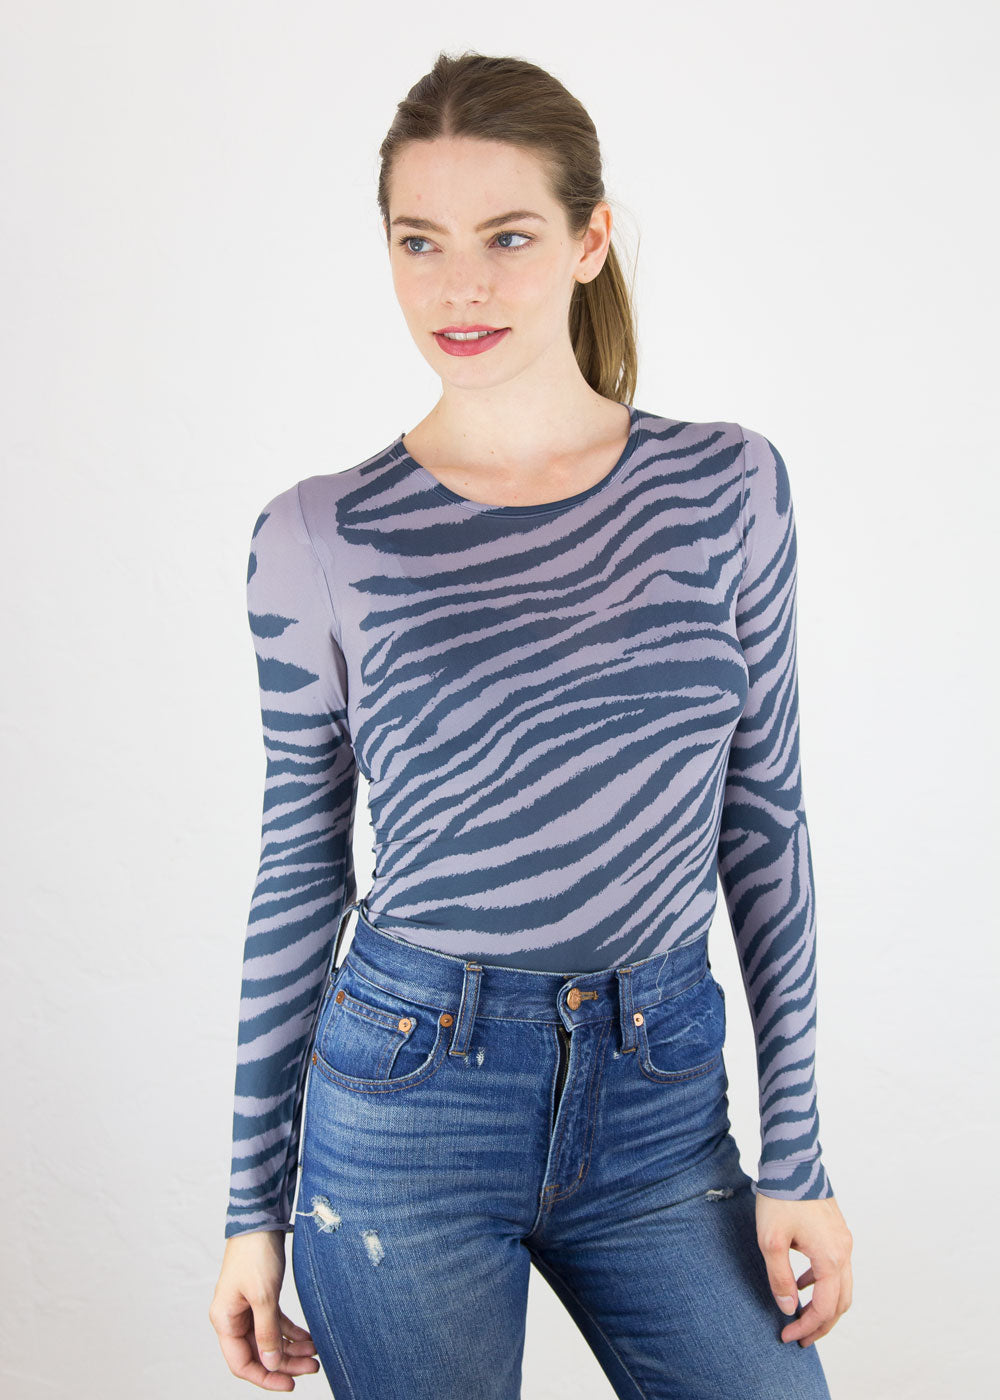 Zebra Skin Crew Neck Top